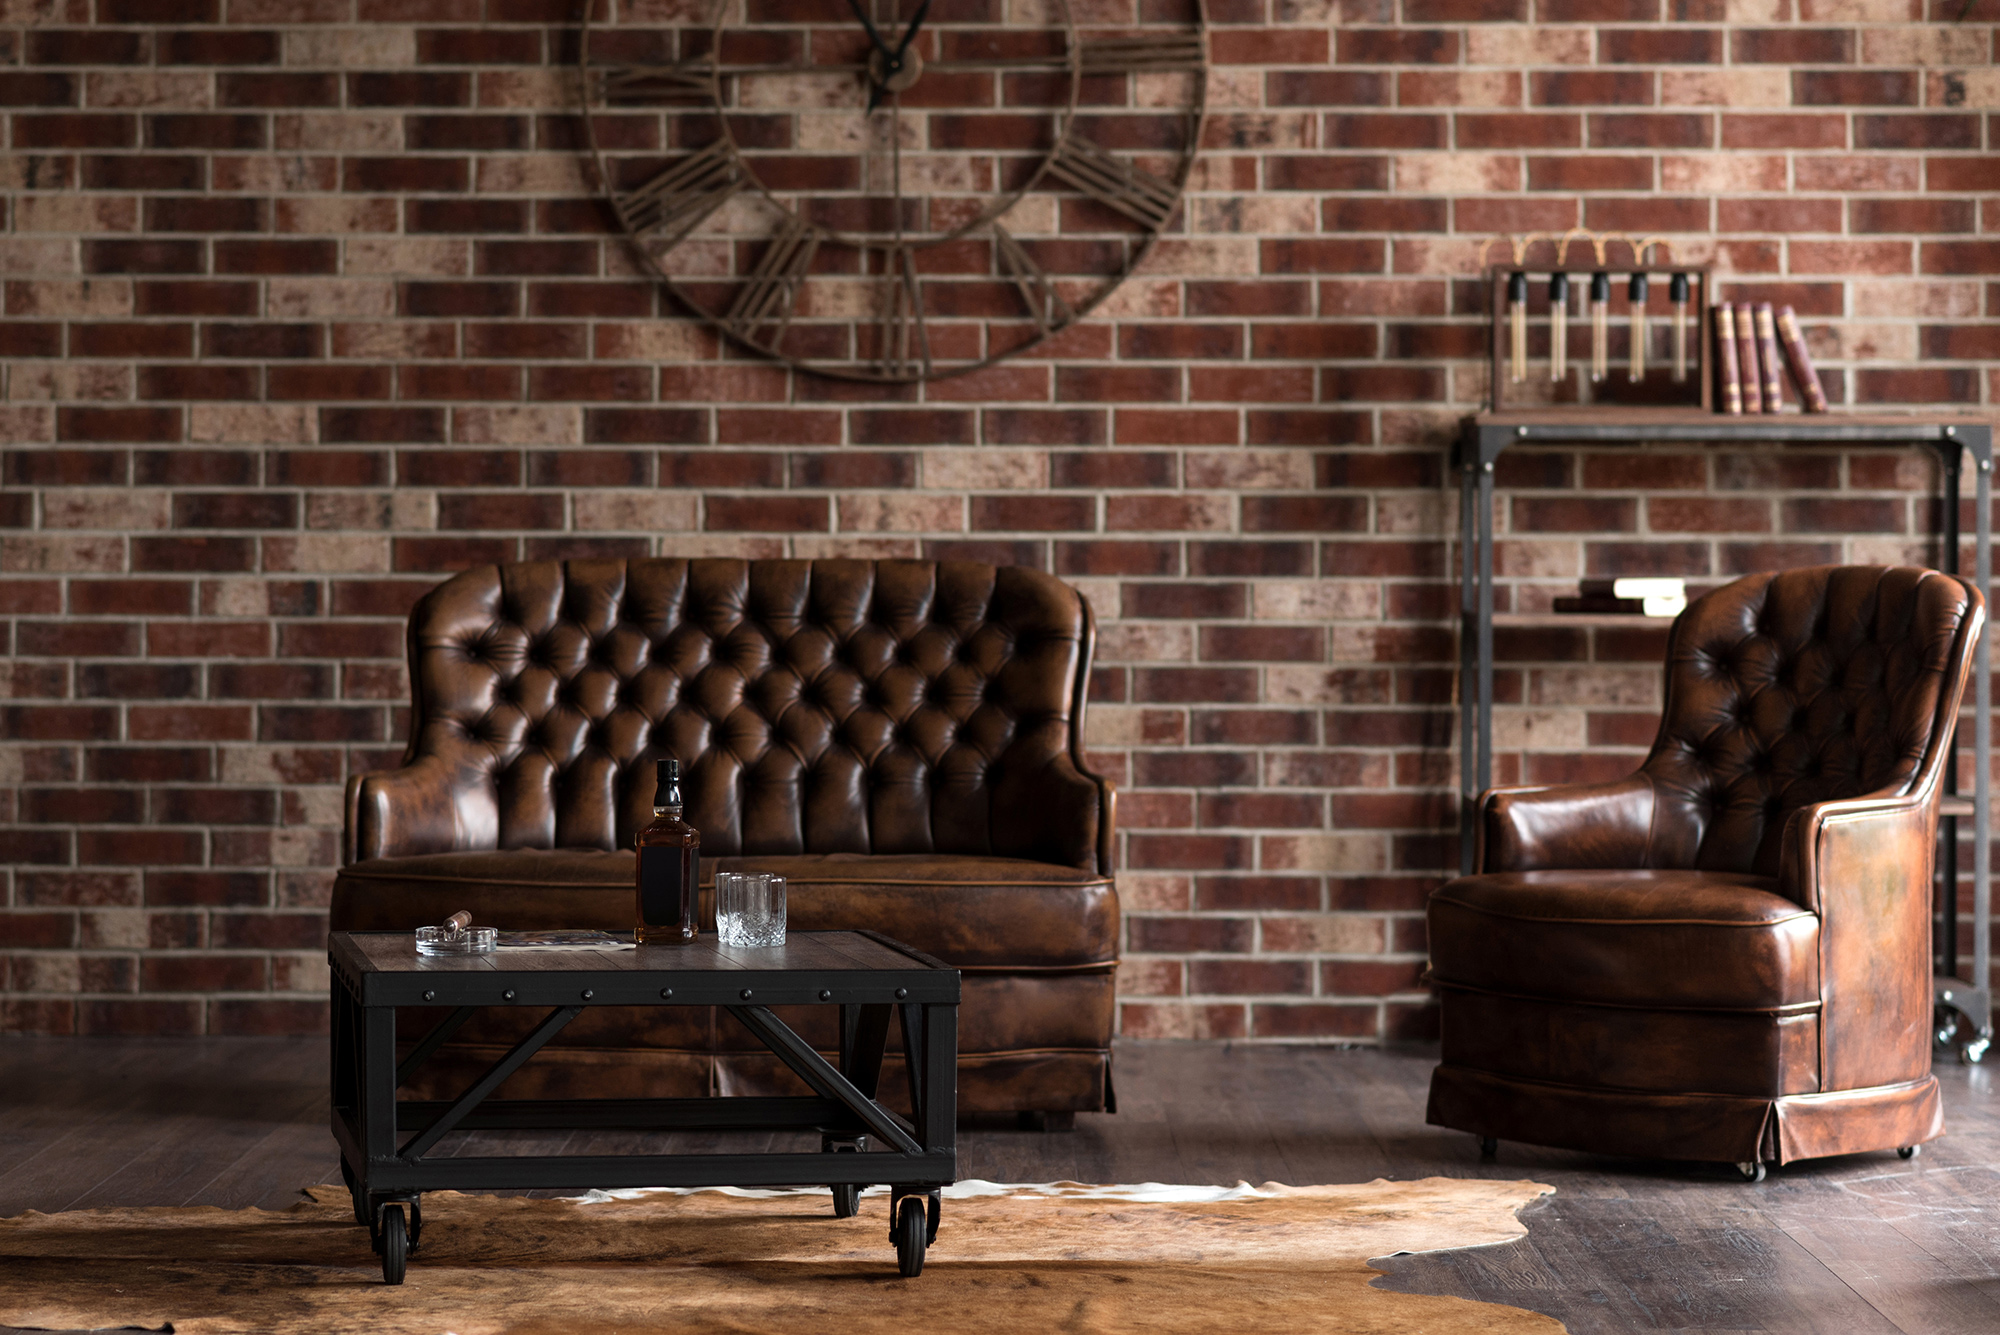 Man Cave Wallpaper : Man cave design and keeping it classy